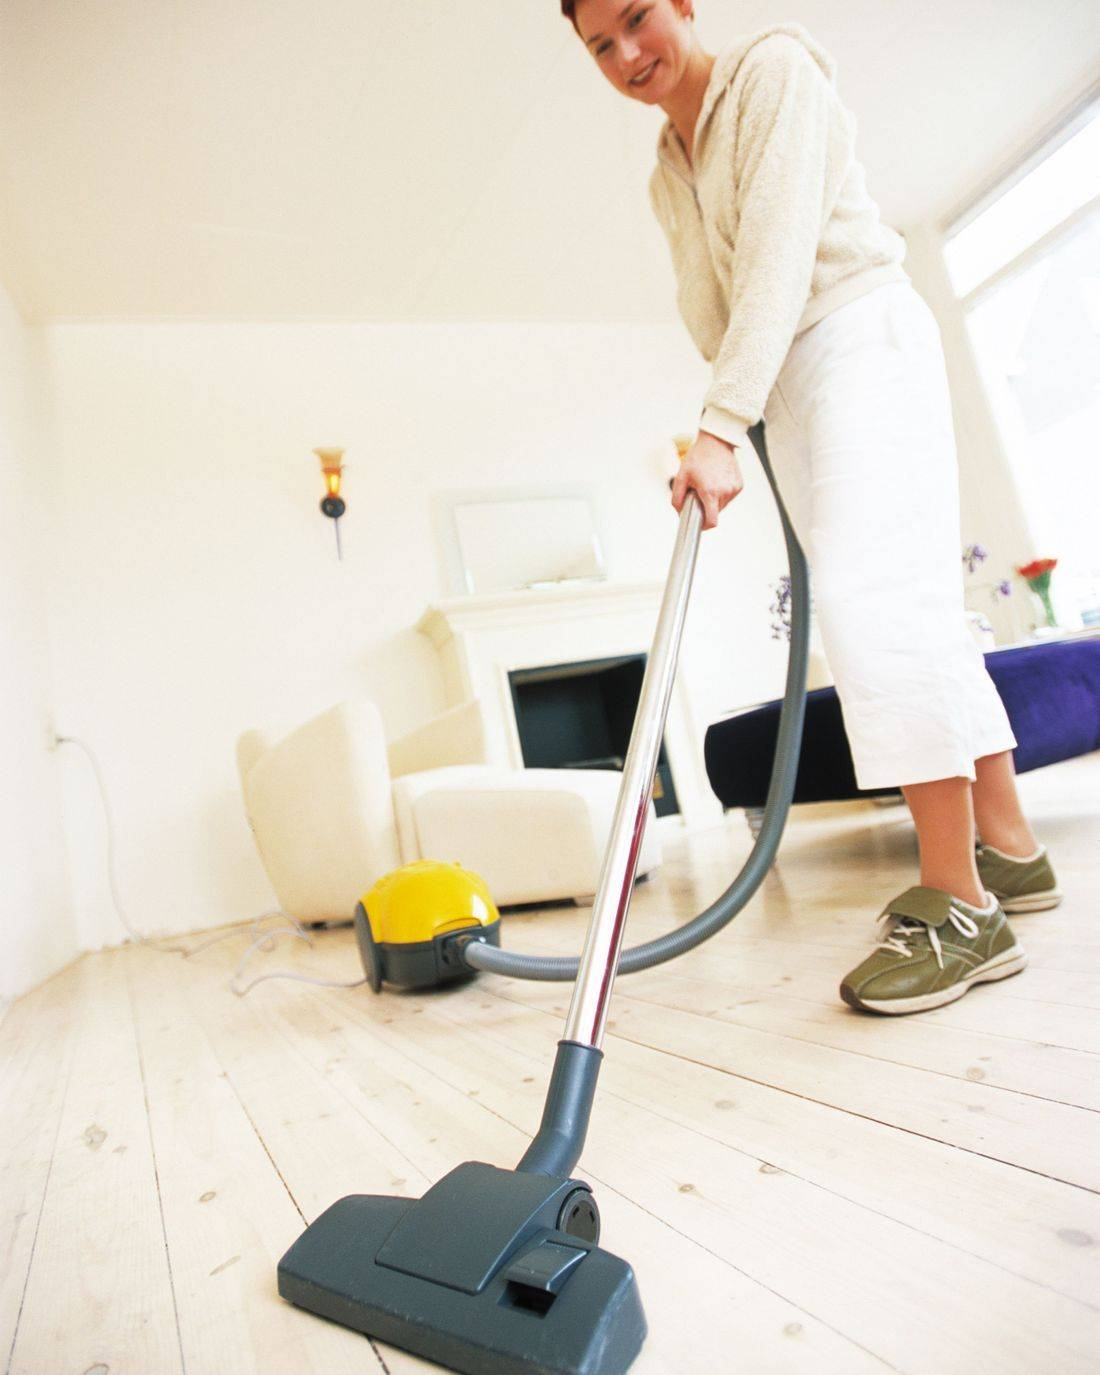 express cleaning services